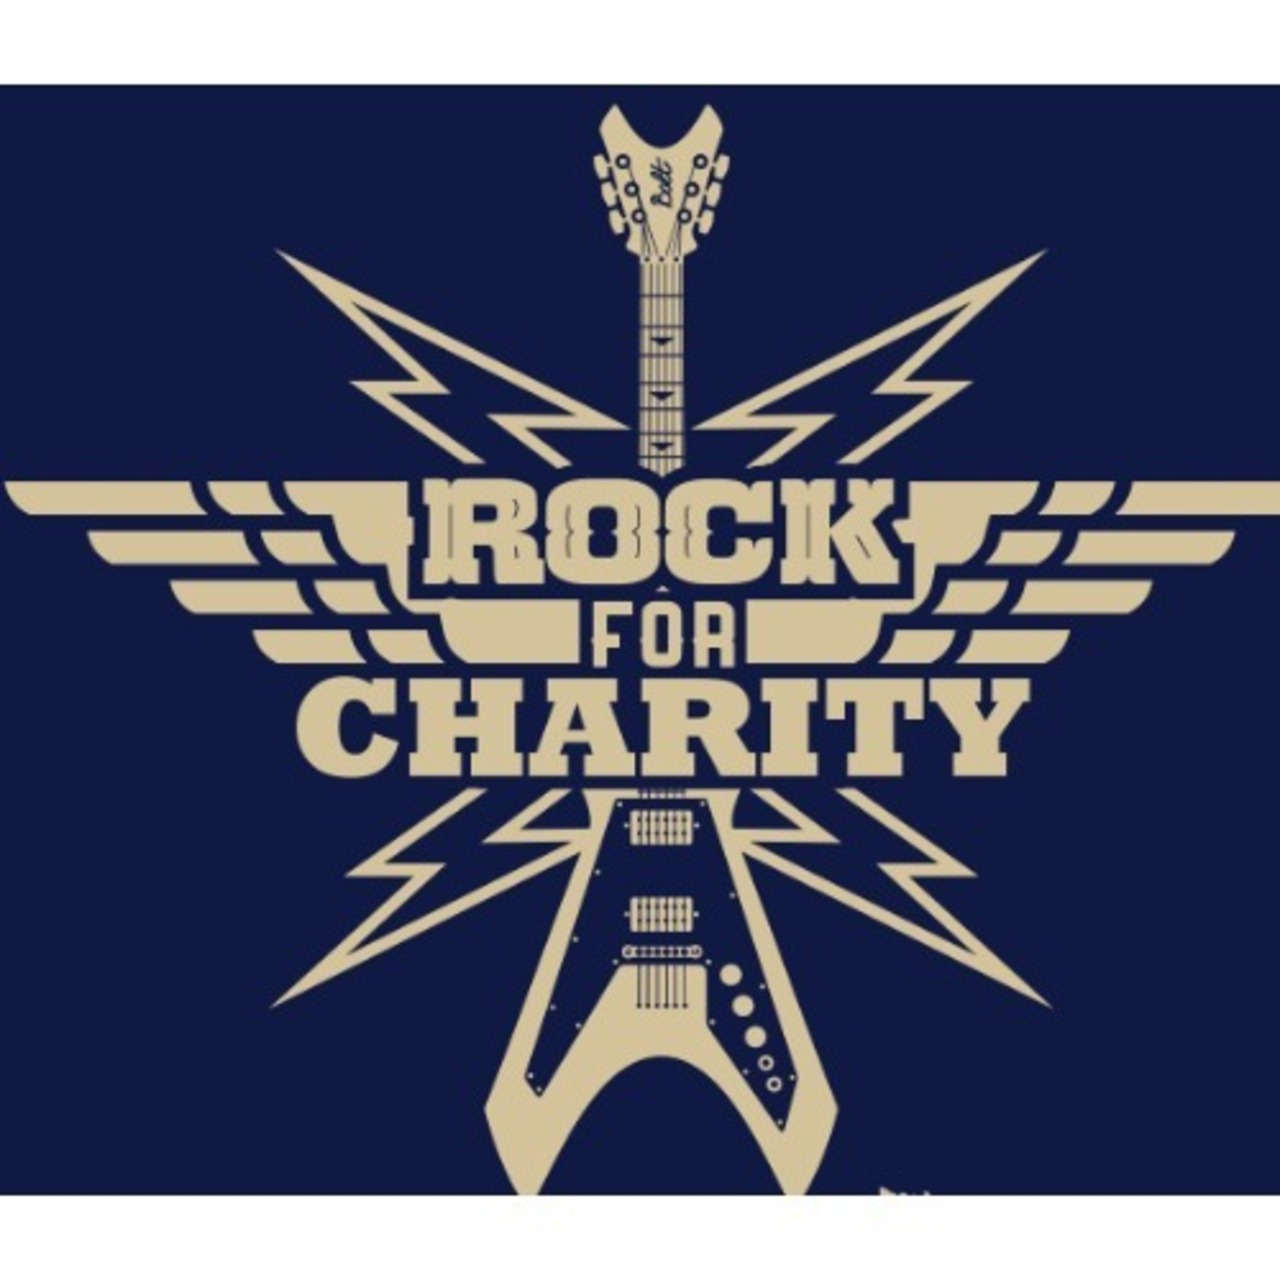 2021 IICF Midwest Division Rock for Charity